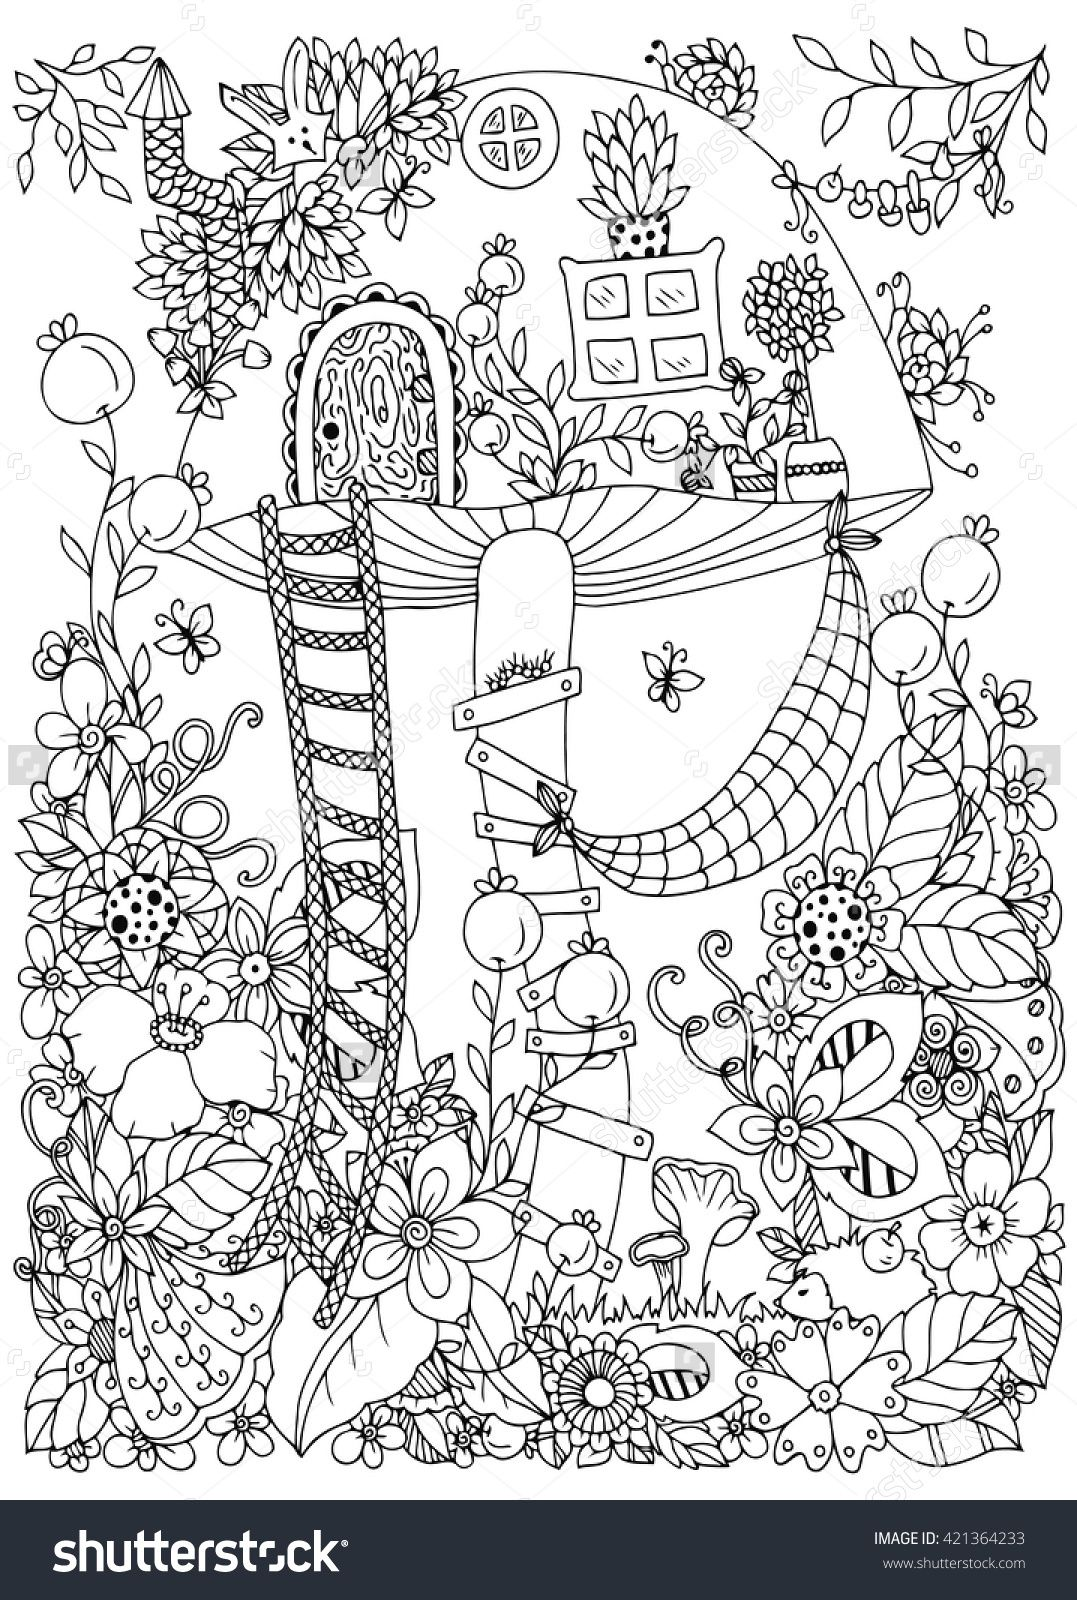 Vector Illustration Zen Tangle House Of The Fungus In The Forest